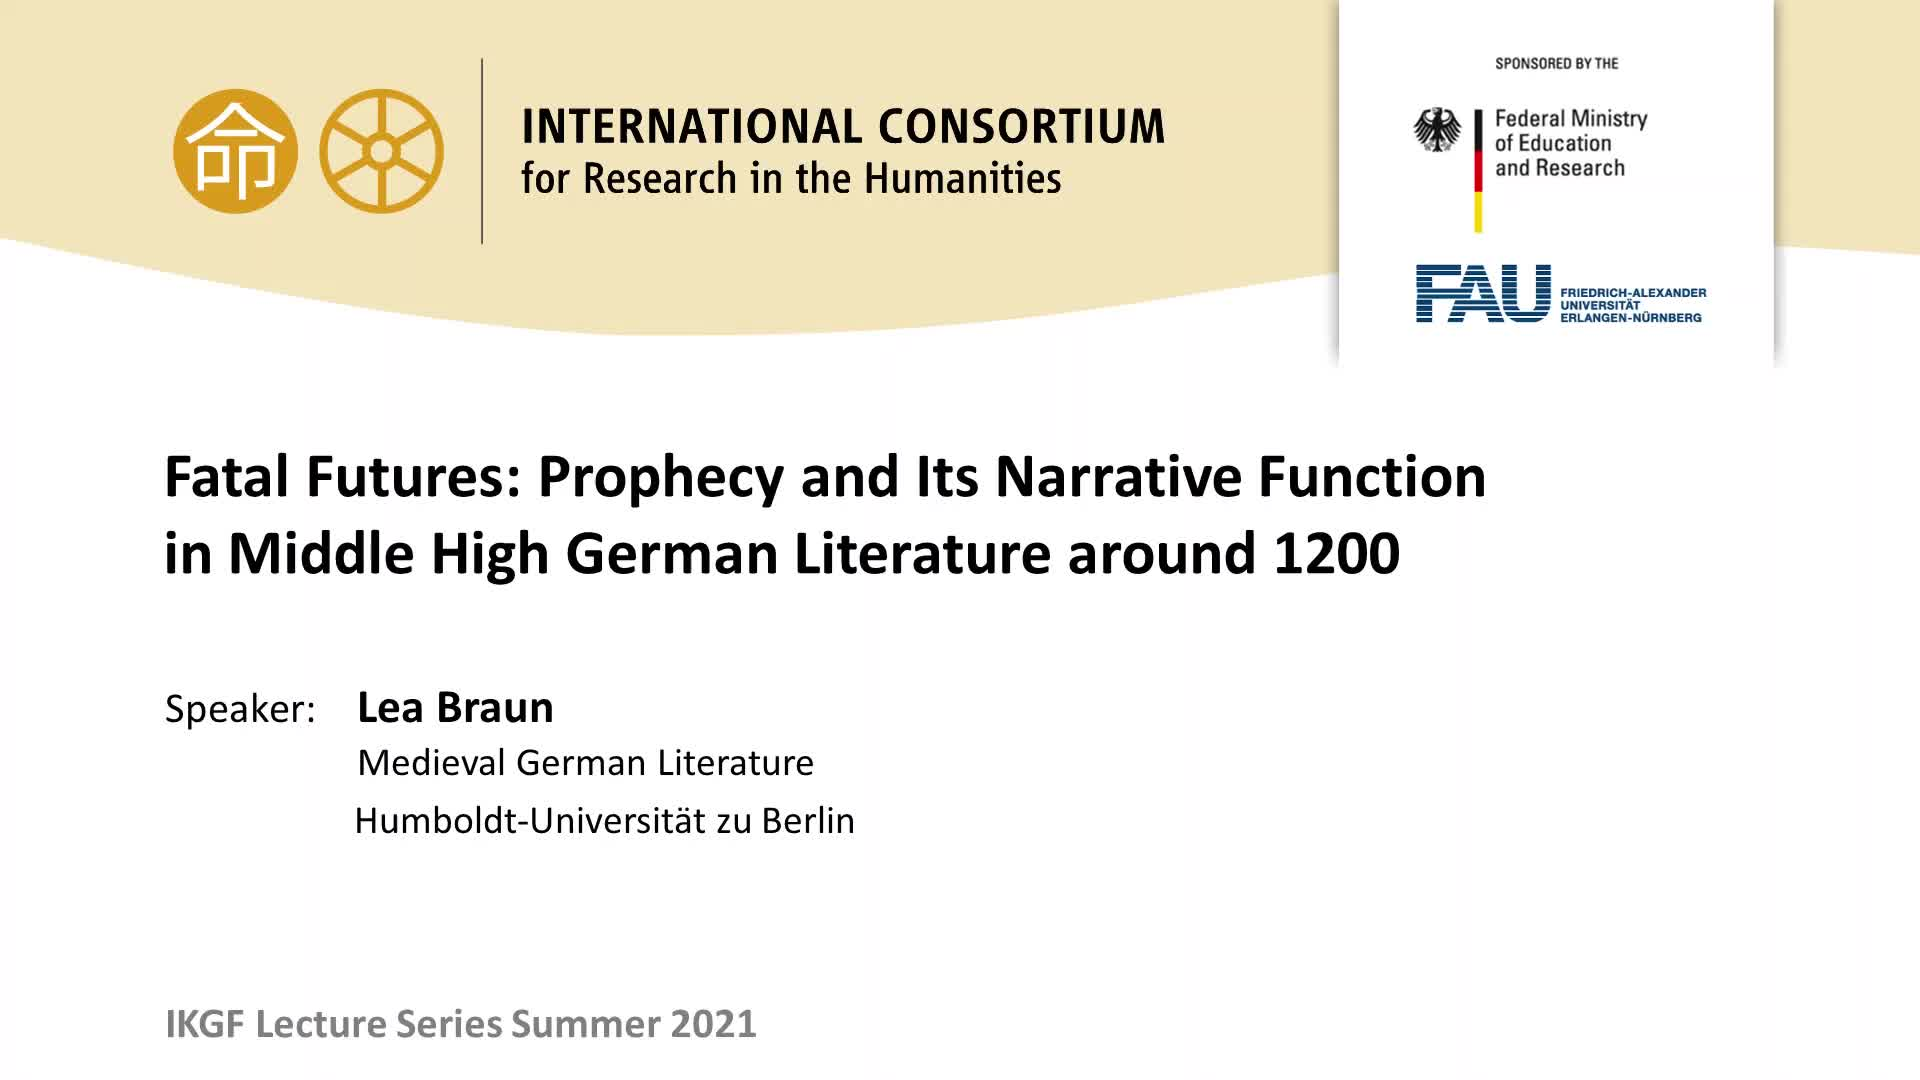 Fatal Futures: Prophecy and Its Narrative Function in Middle High German Literature around 1200 preview image